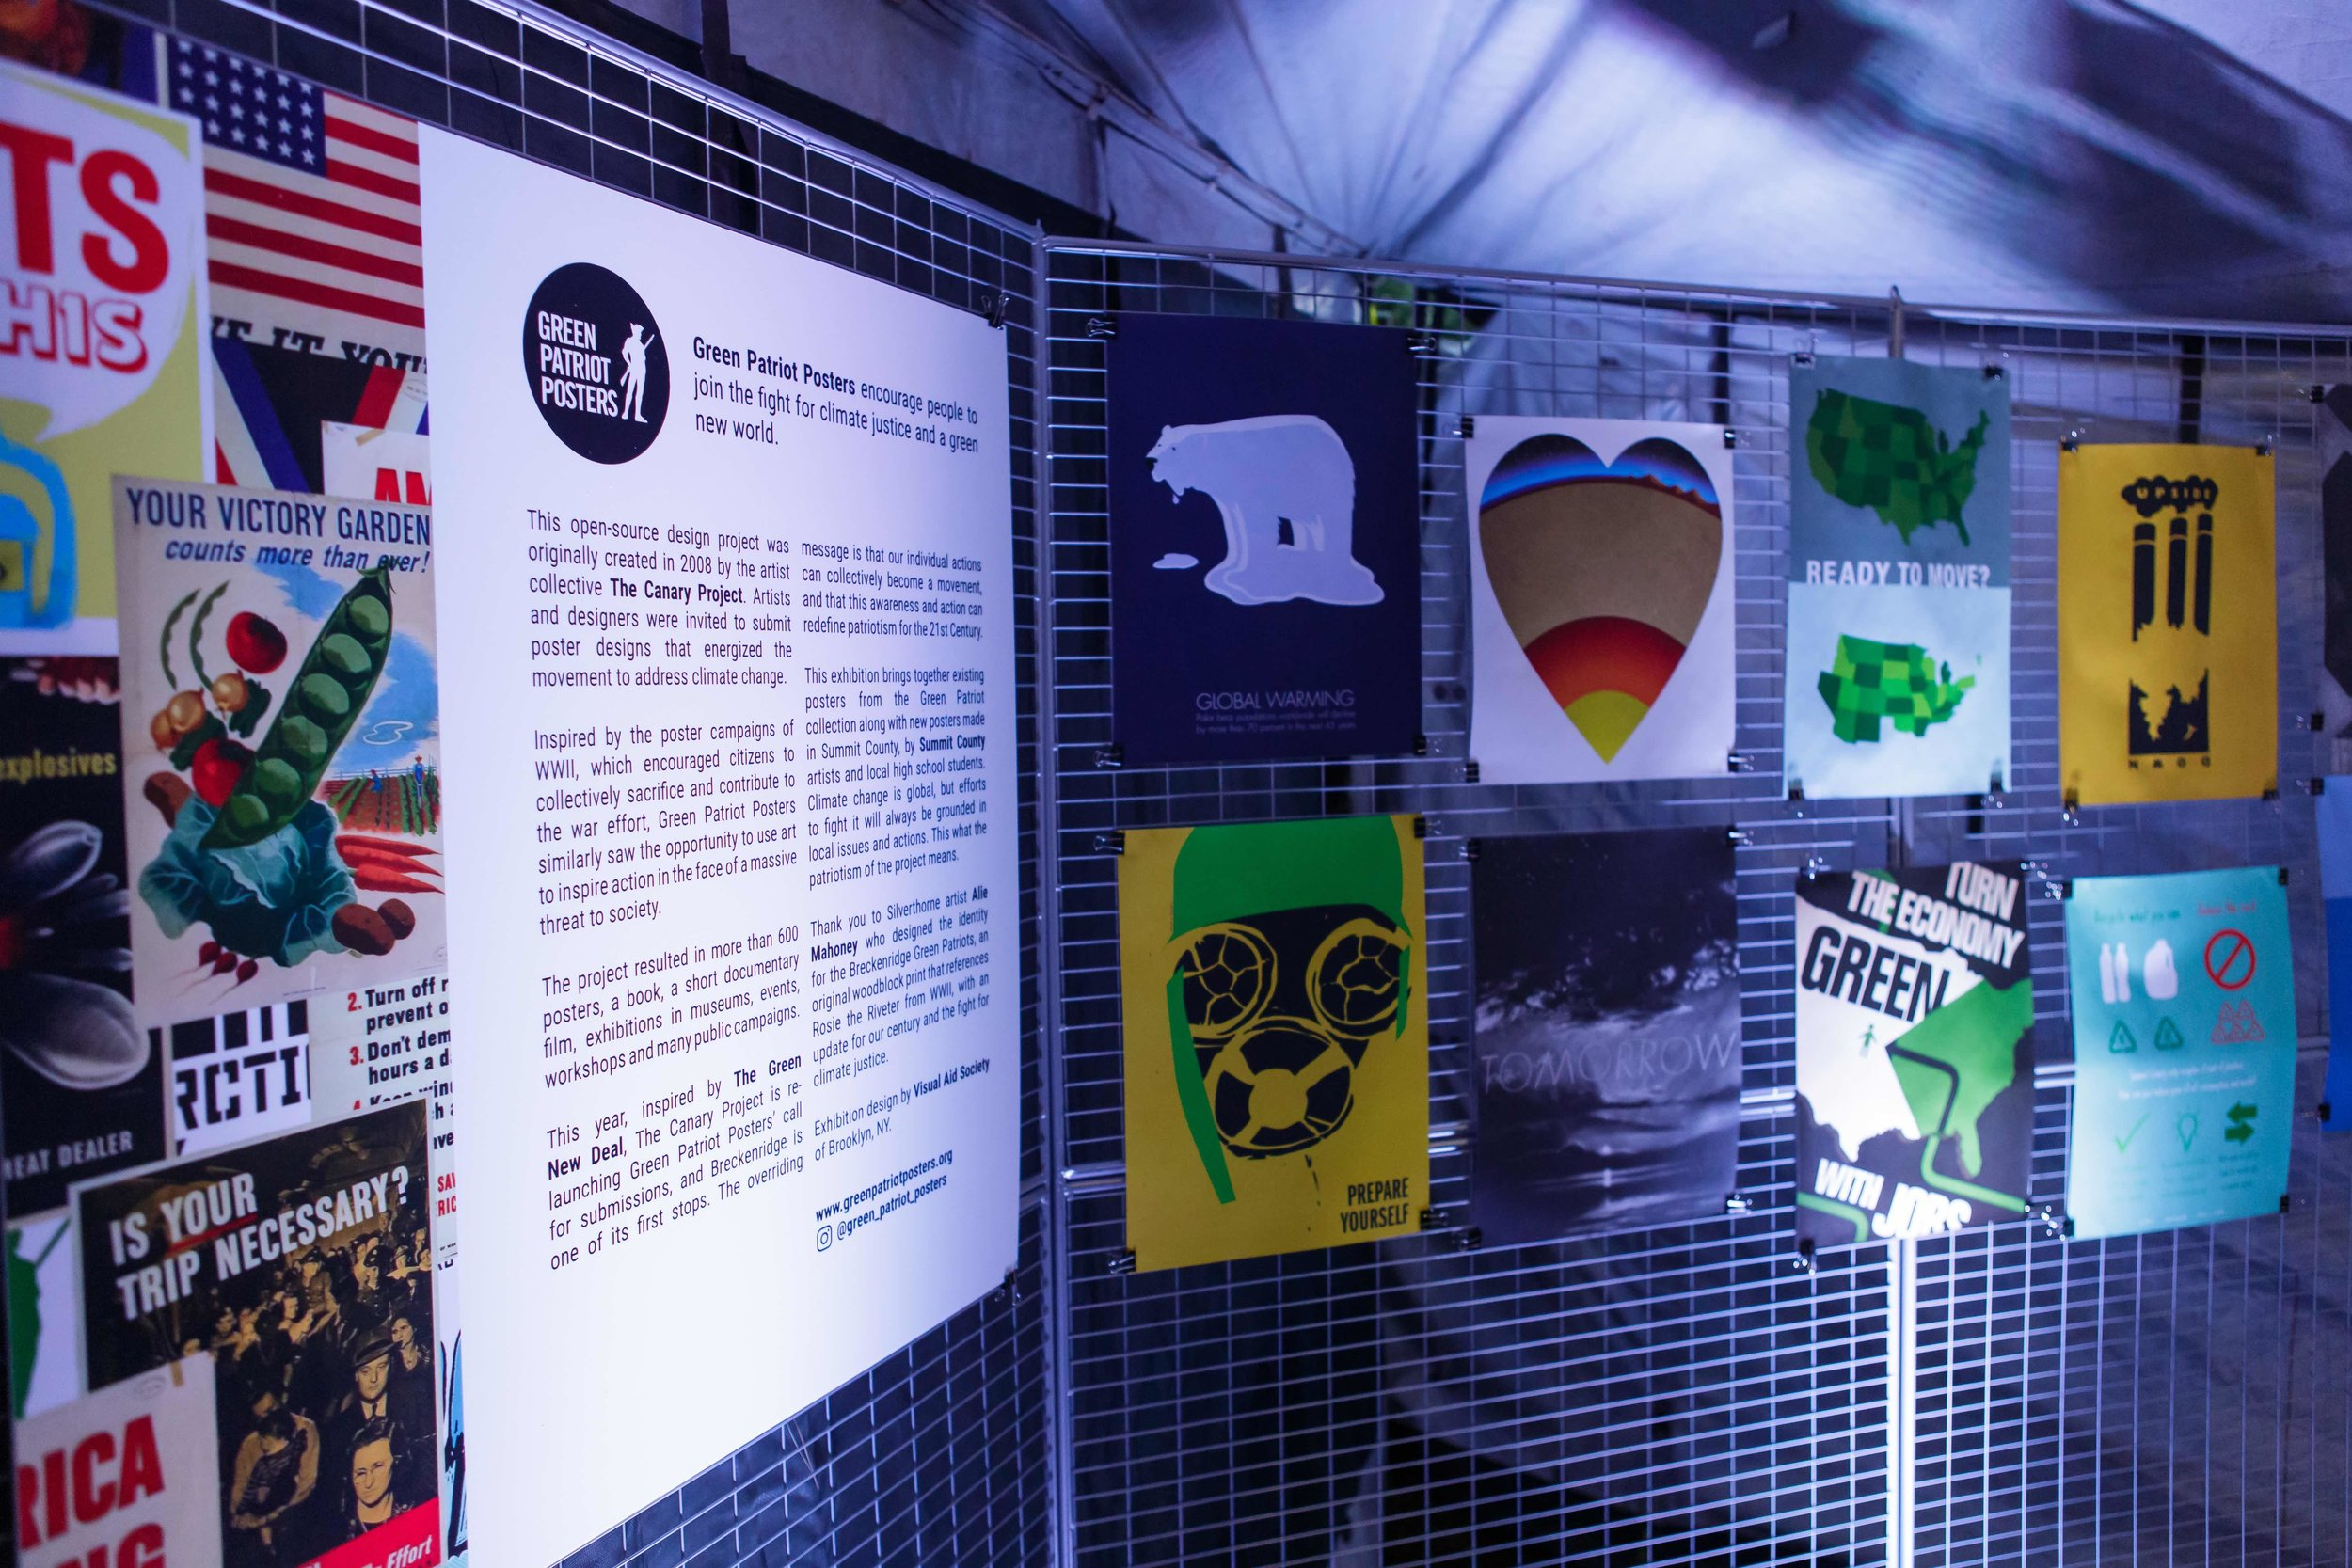 Green Patriot Posters - By The Canary Project | Breckenridge 2019